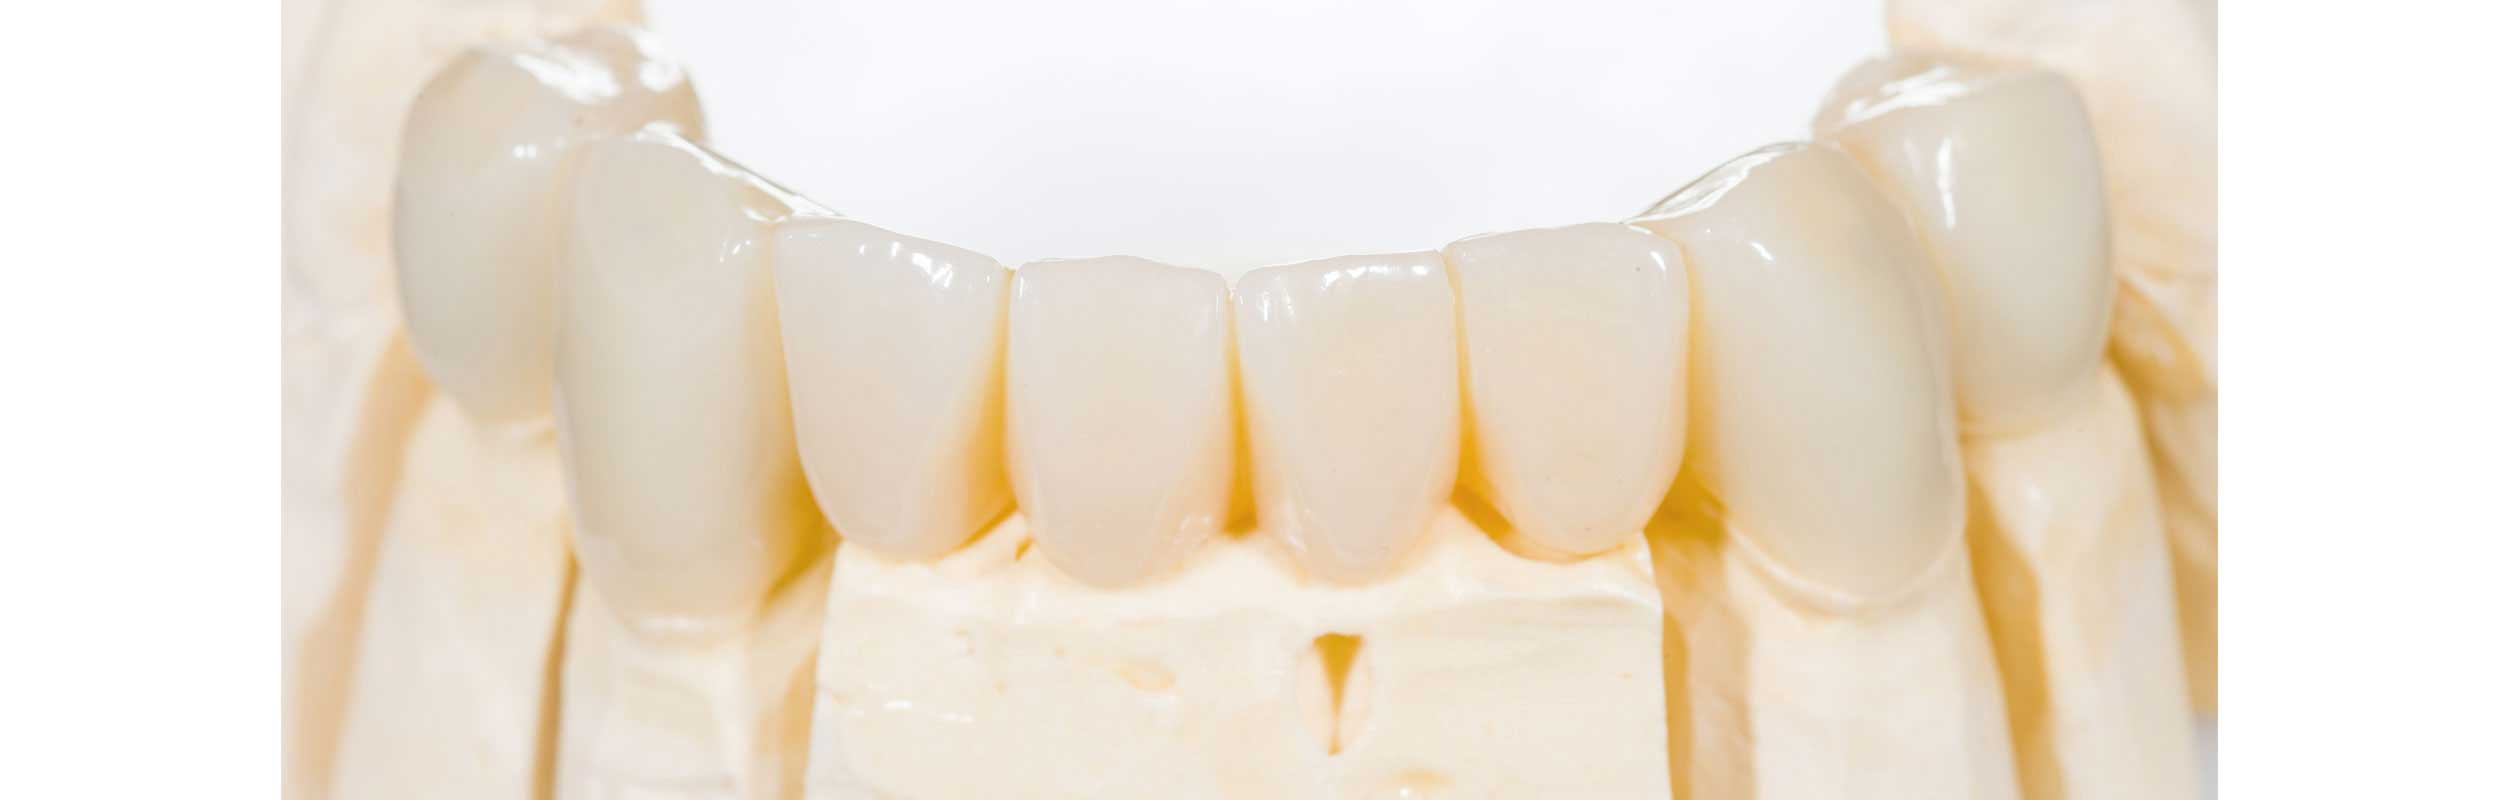 dental crowns at Belle Meade Dental - Nashville, TN